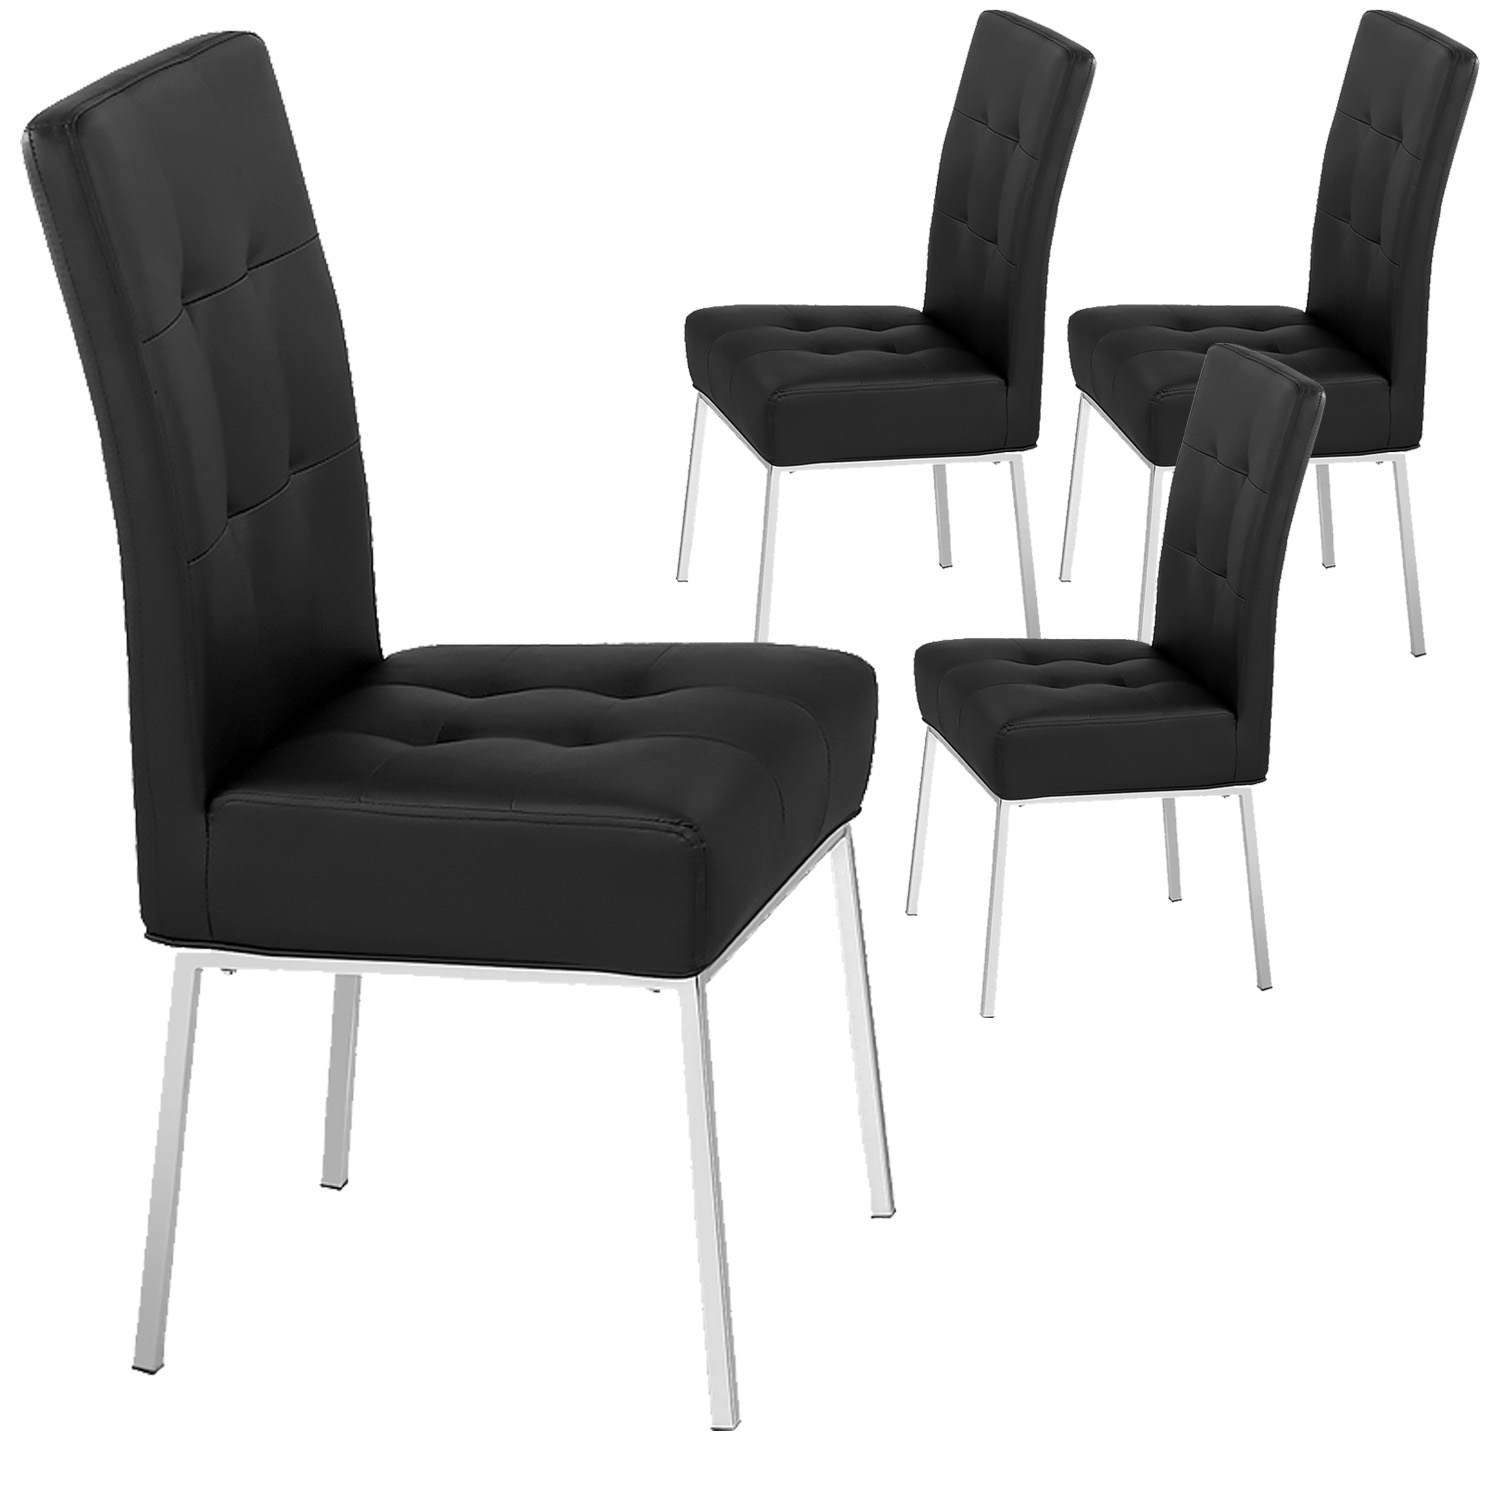 Deco in paris lot de 4 chaises noir baroko baroko x4 noir for Lot 4 chaises